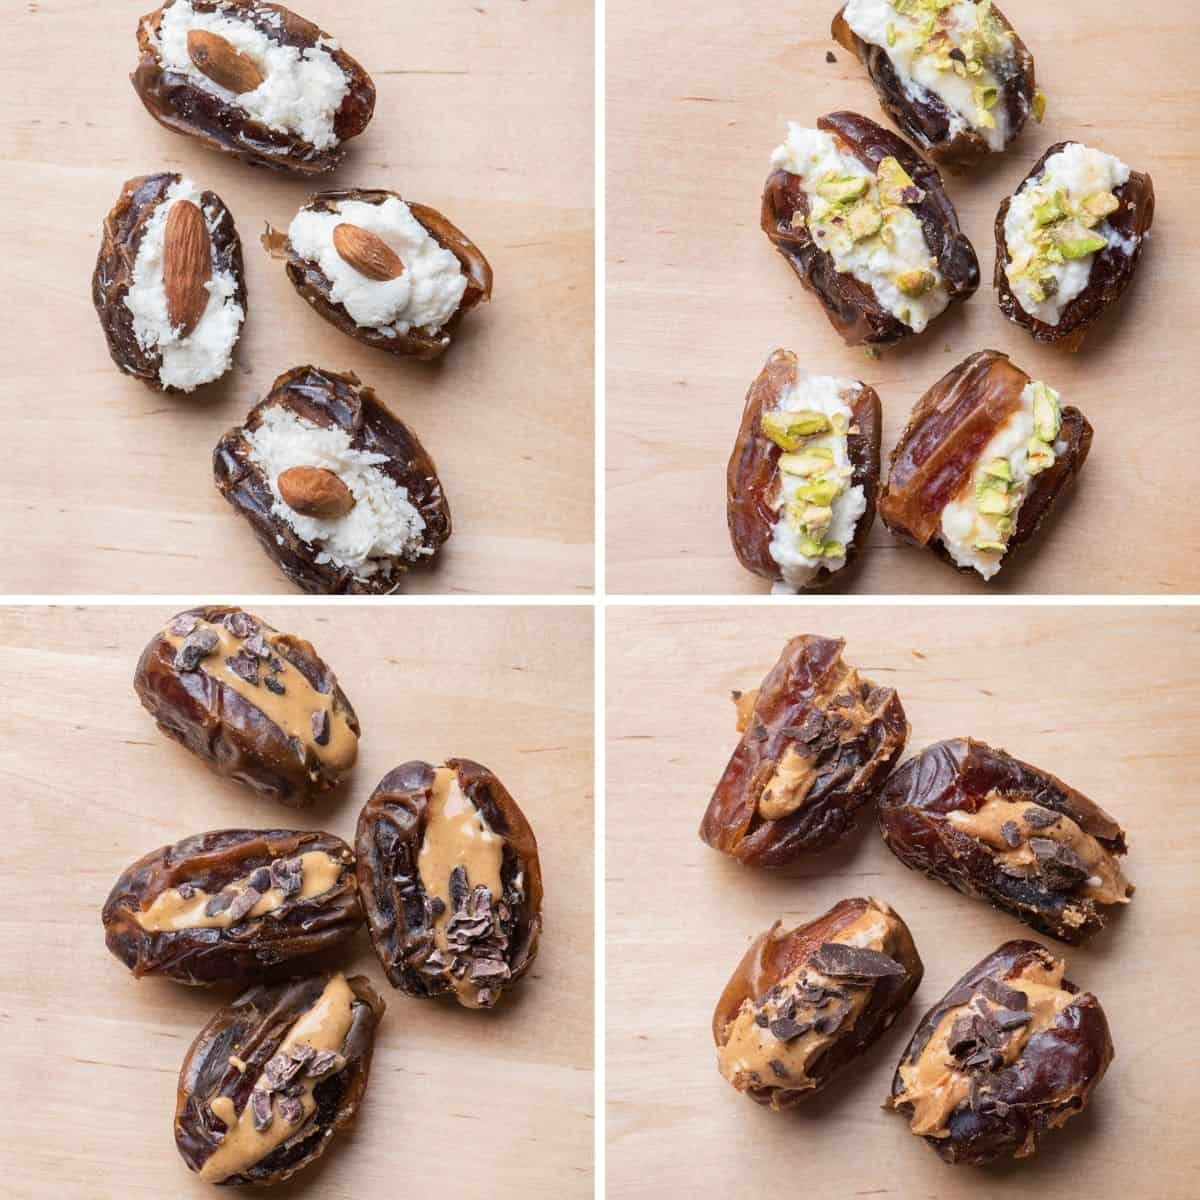 4 image collage to show four types of stuffed dates